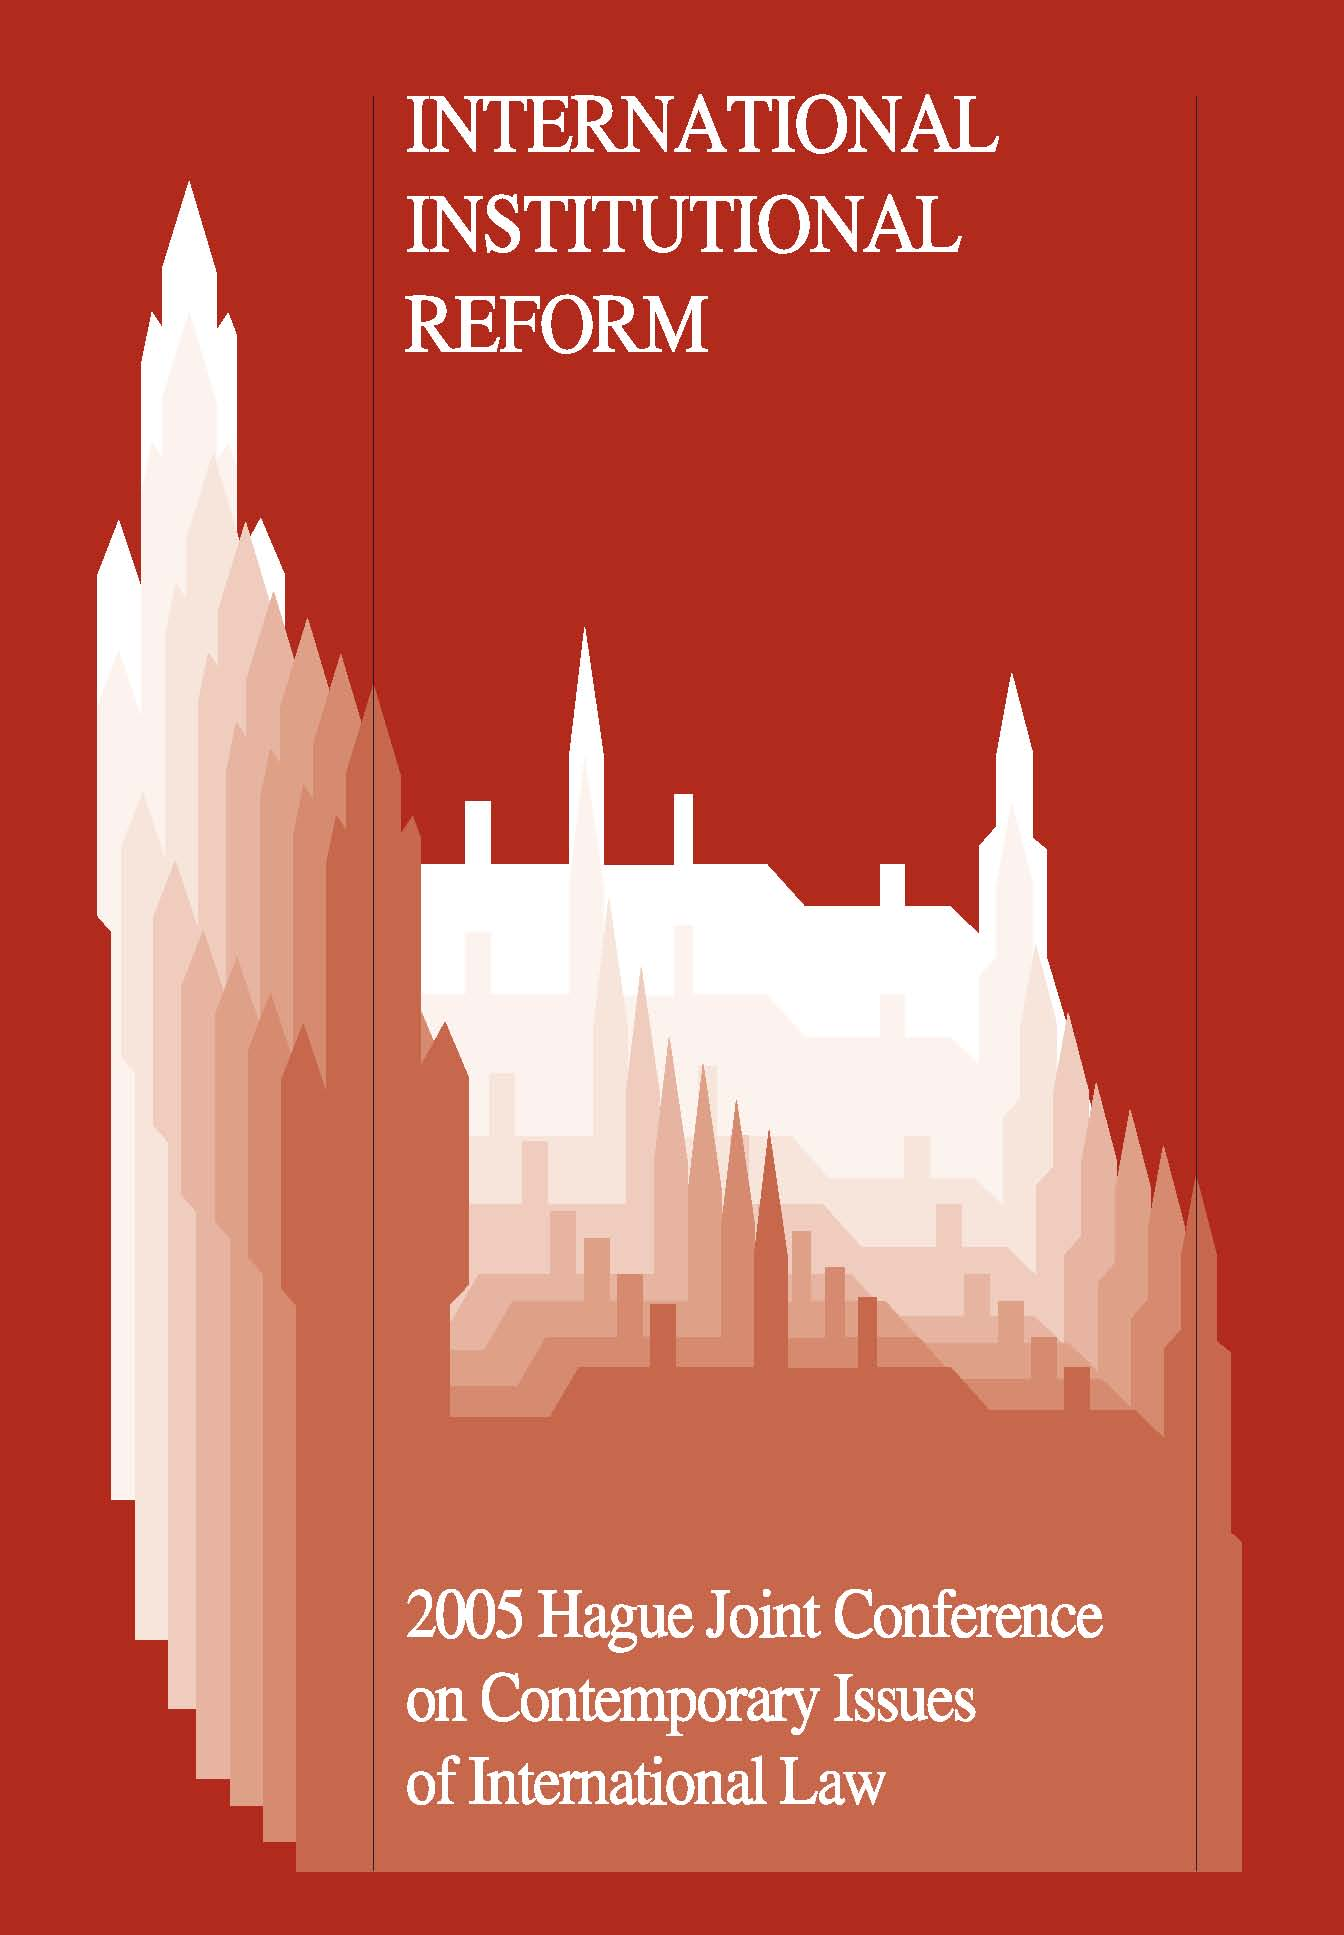 International Institutional Reform - 2005 Hague Joint Conference on Issues of International Law